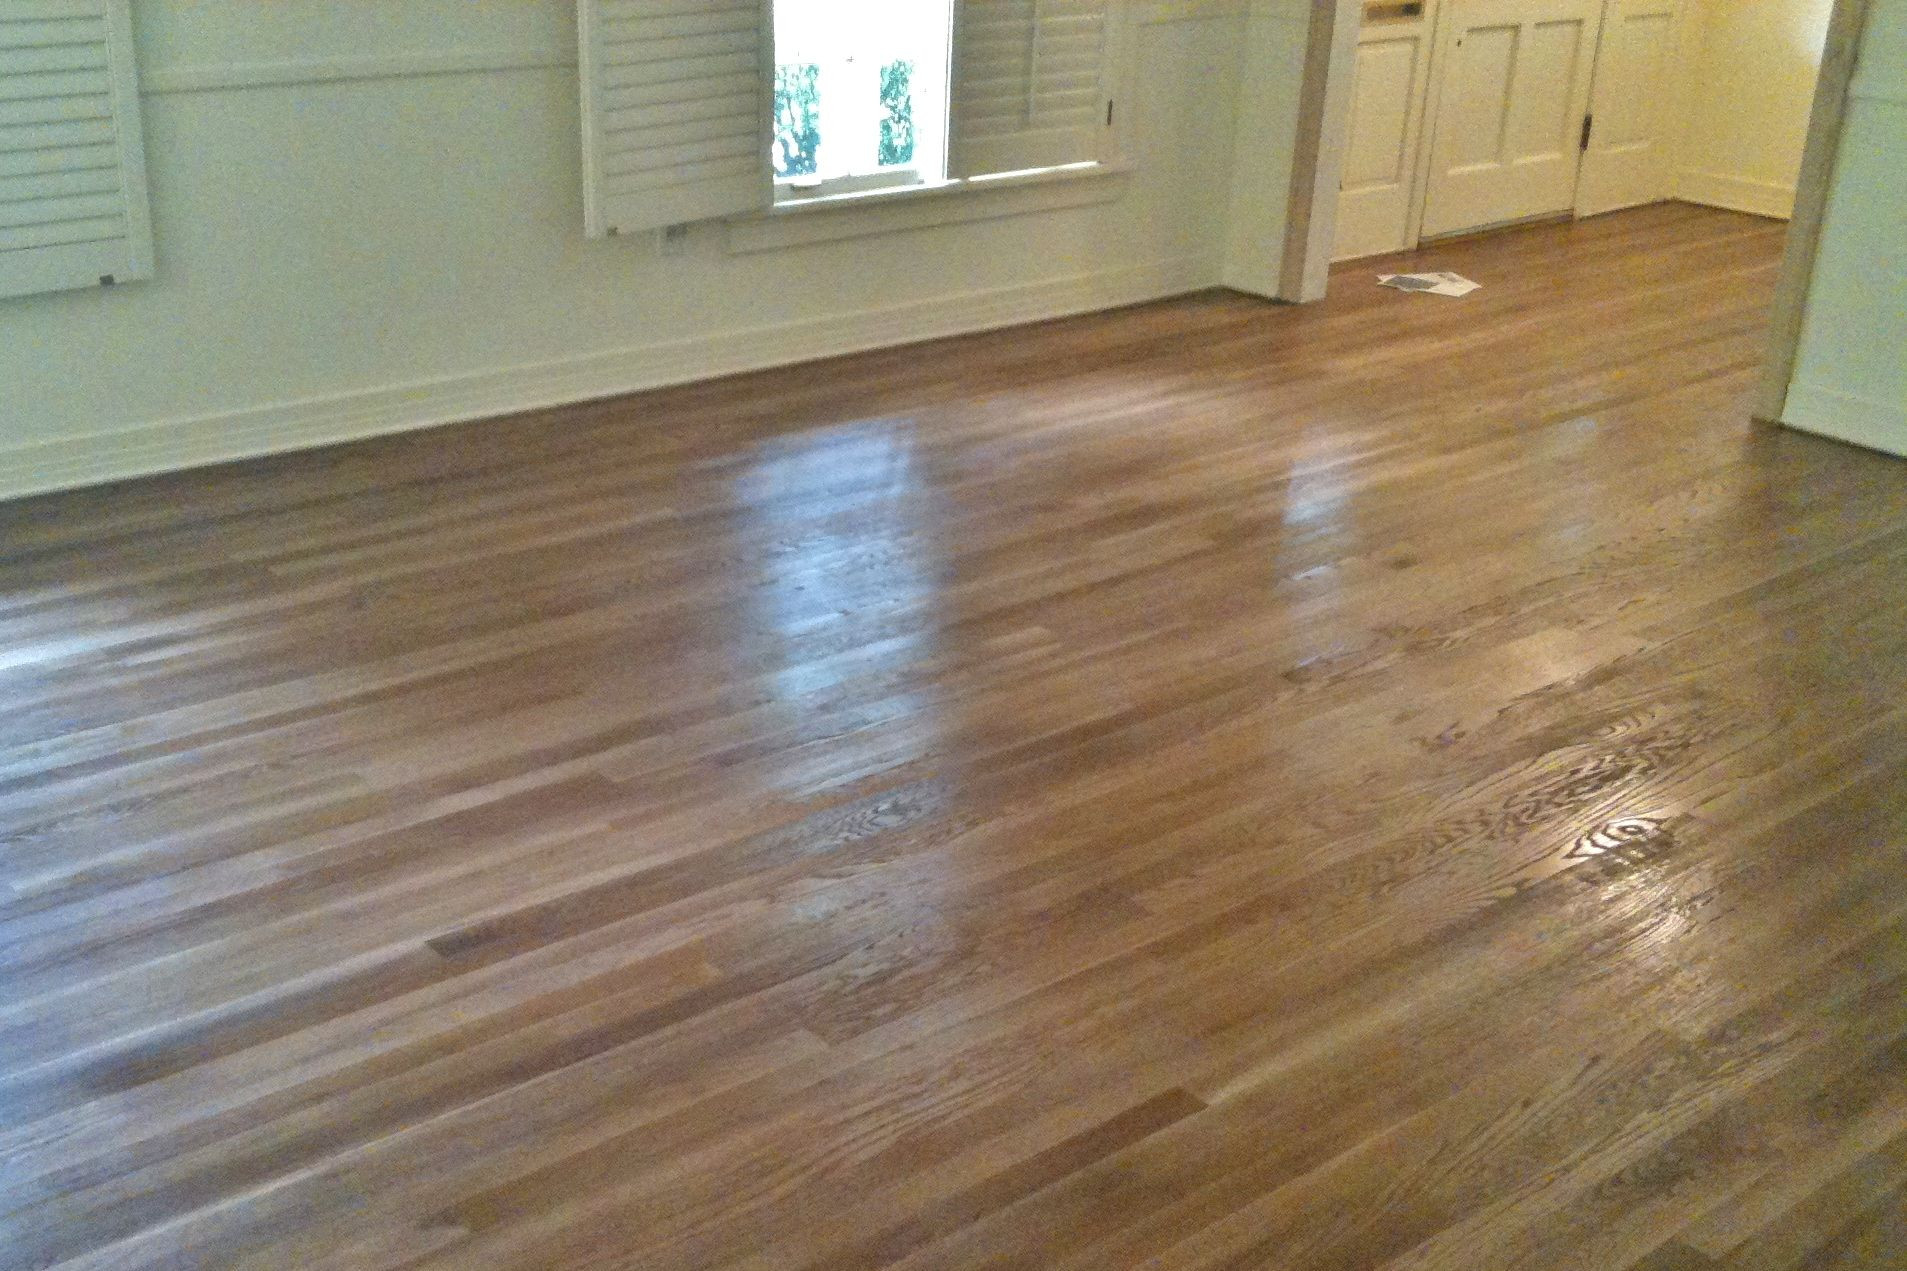 hardwood floor refinishing specialists of oak meet special walnut home design pinterest flooring with regard to minwax special walnut stain on oak hardwood floors walnut hardwood flooring refinishing hardwood